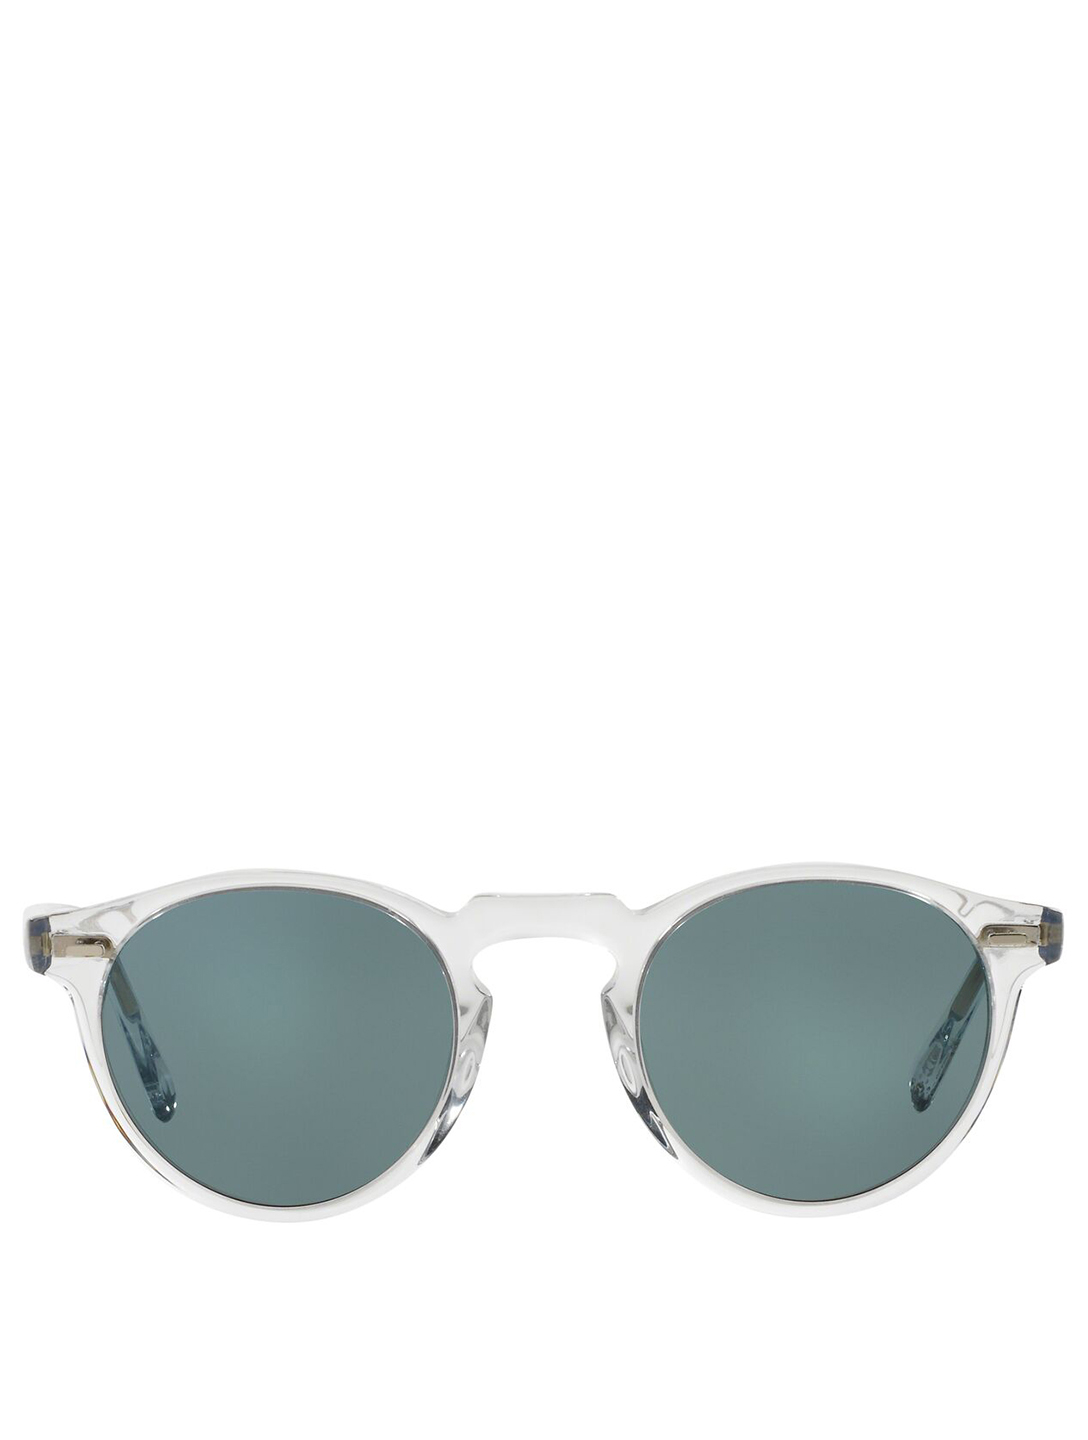 OLIVER PEOPLES Gregory Peck Round Sunglasses Men's Blue